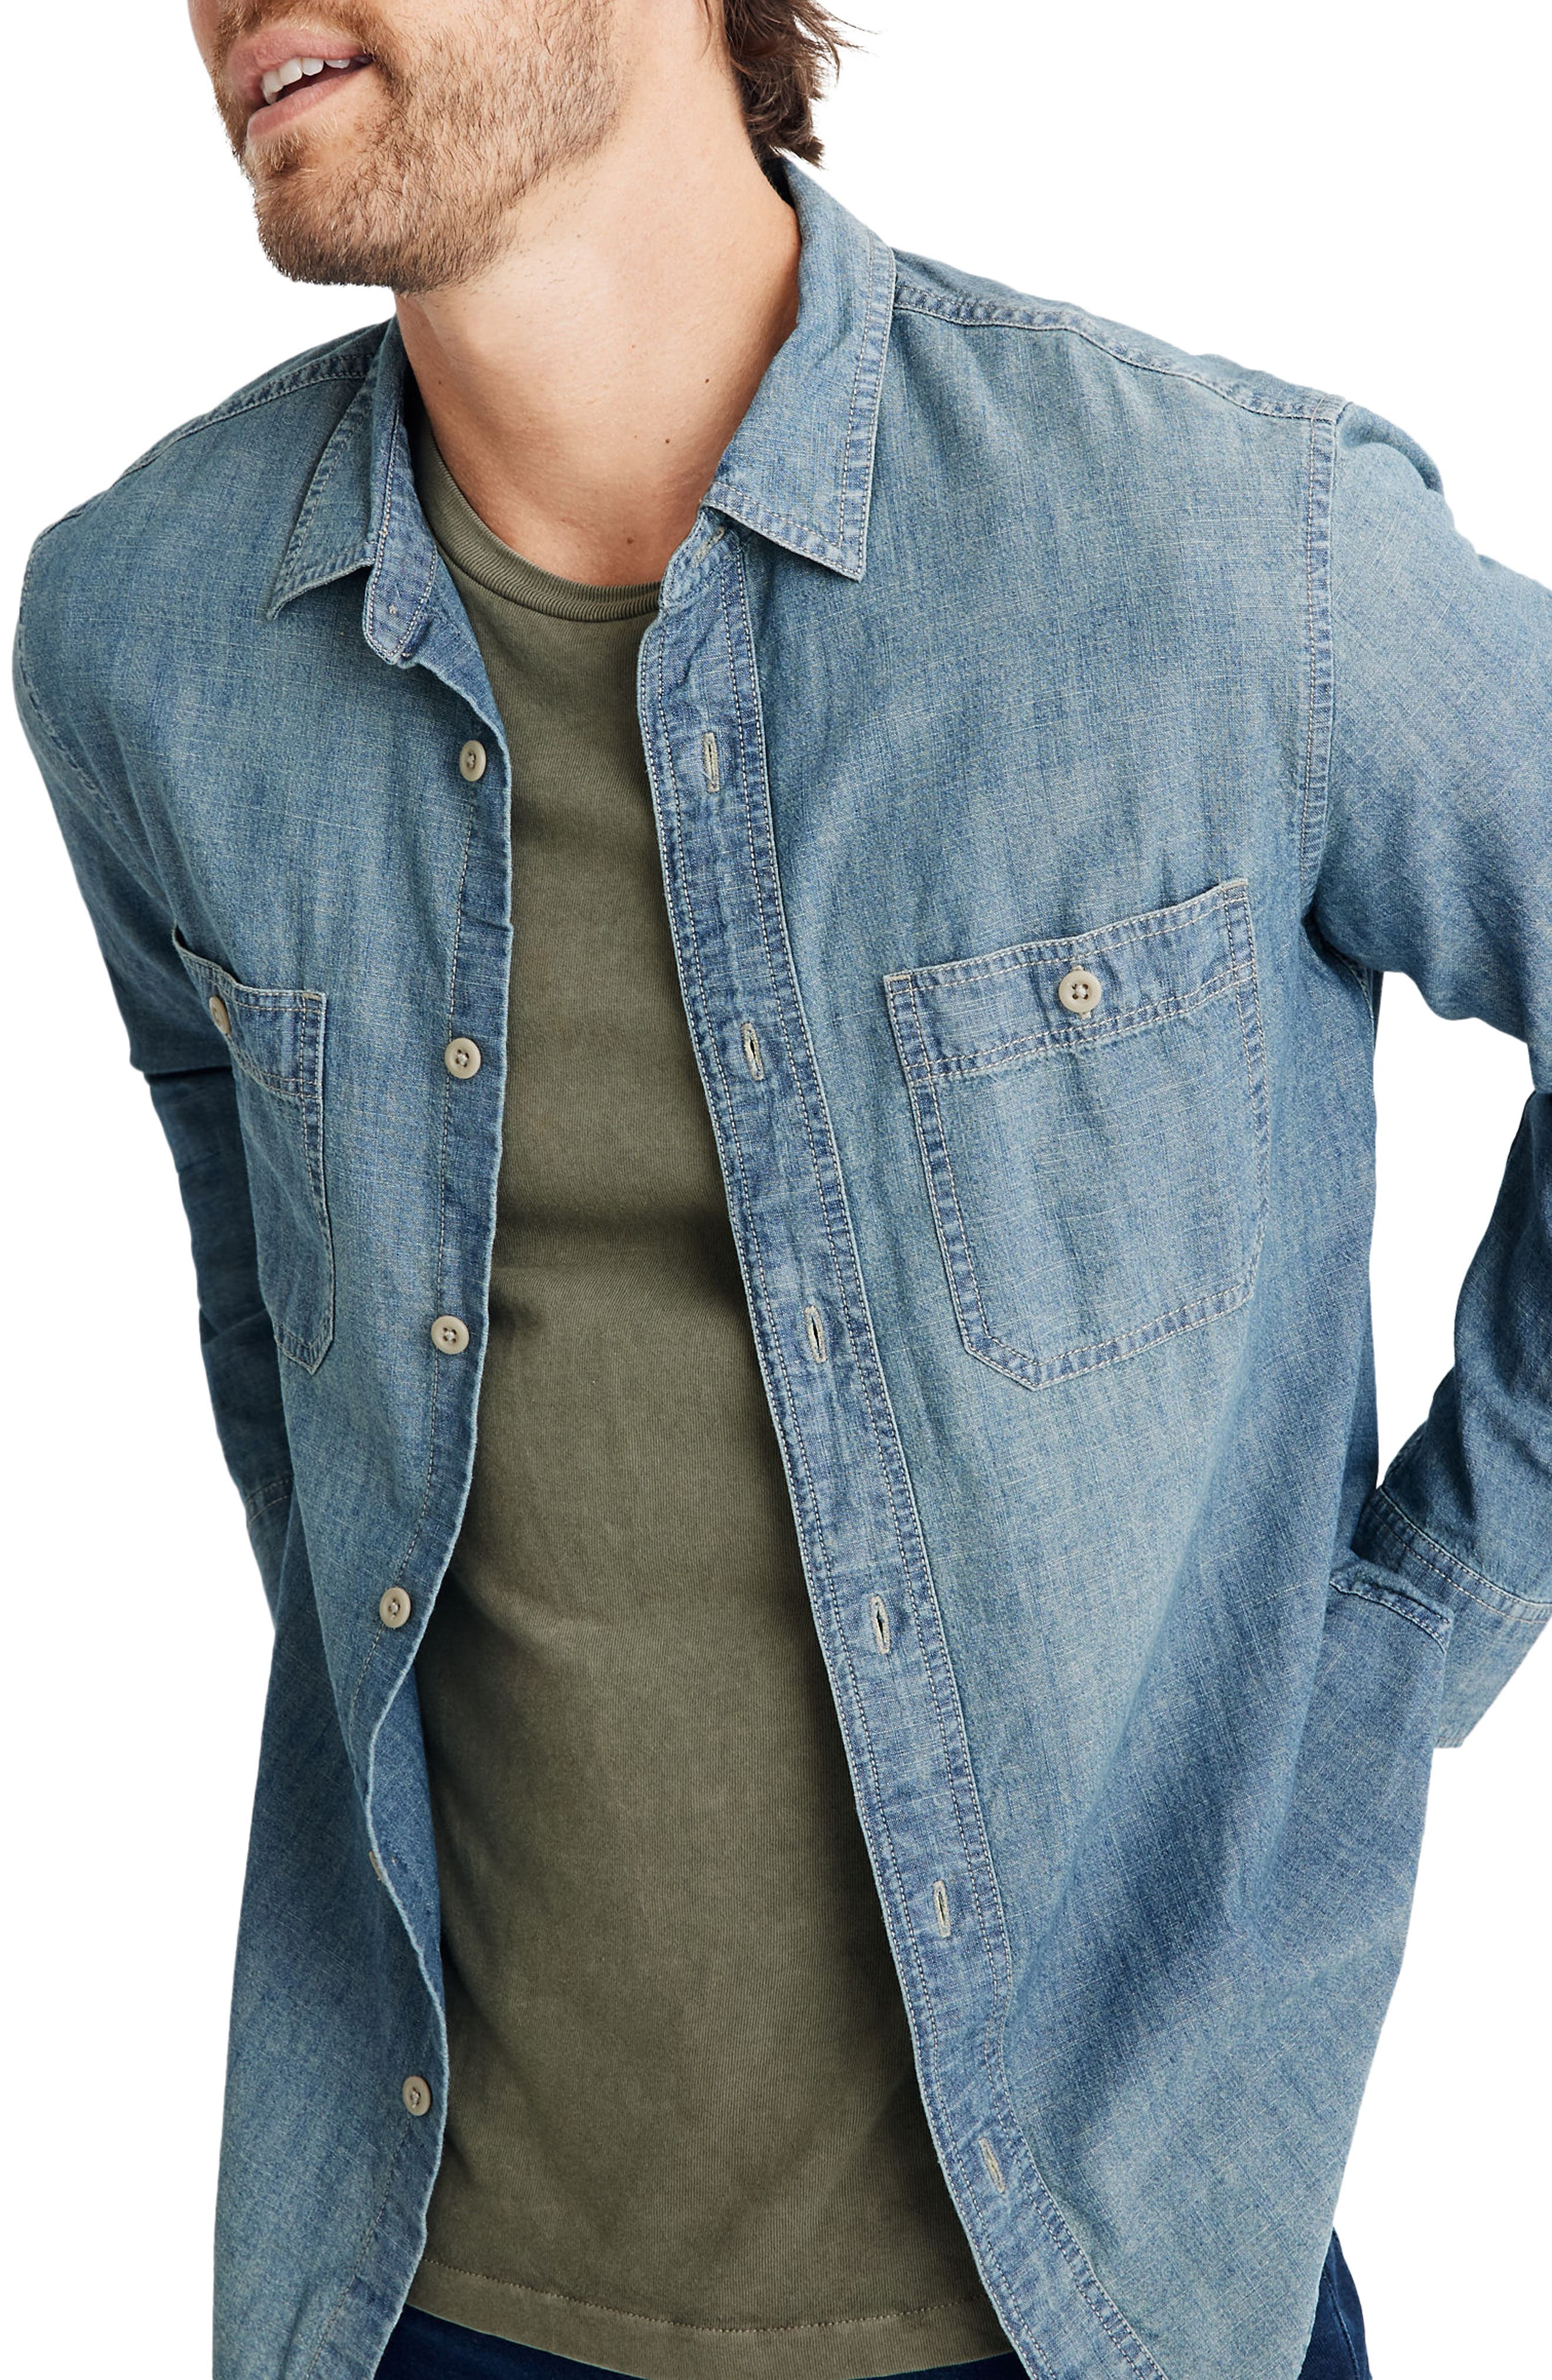 Men's Vintage Workwear – 1920s, 1930s, 1940s, 1950s Mens Madewell Winterdale Chambray Shirt $79.50 AT vintagedancer.com